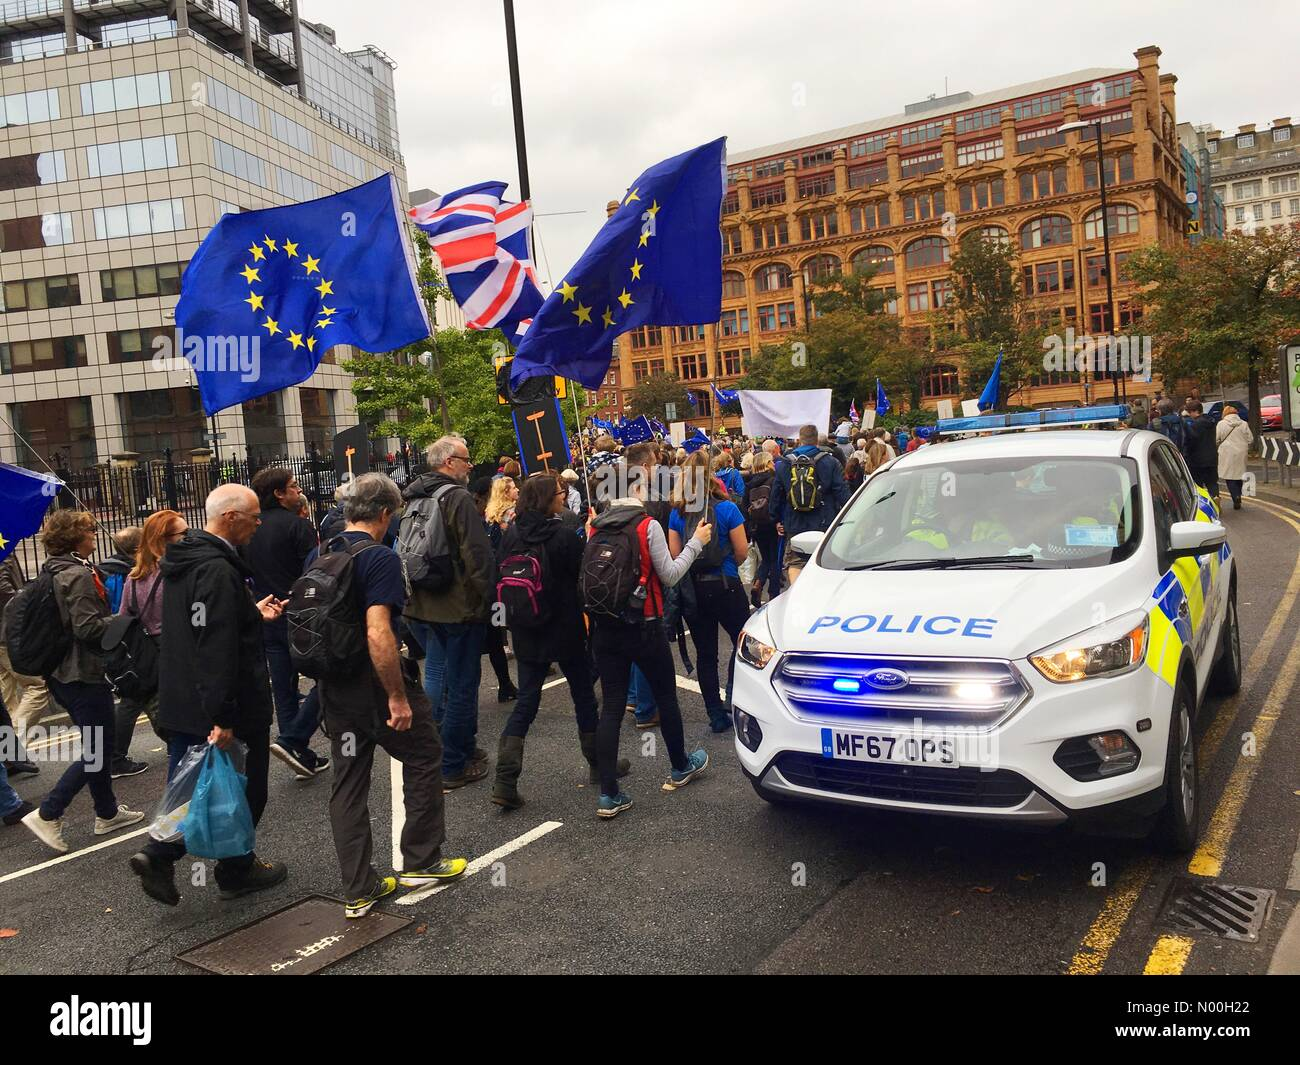 Stop Brexit march  - Manchester 1st March 2017 - Anti Brexit demonstrators gather near the Conservative Party Conference Stock Photo